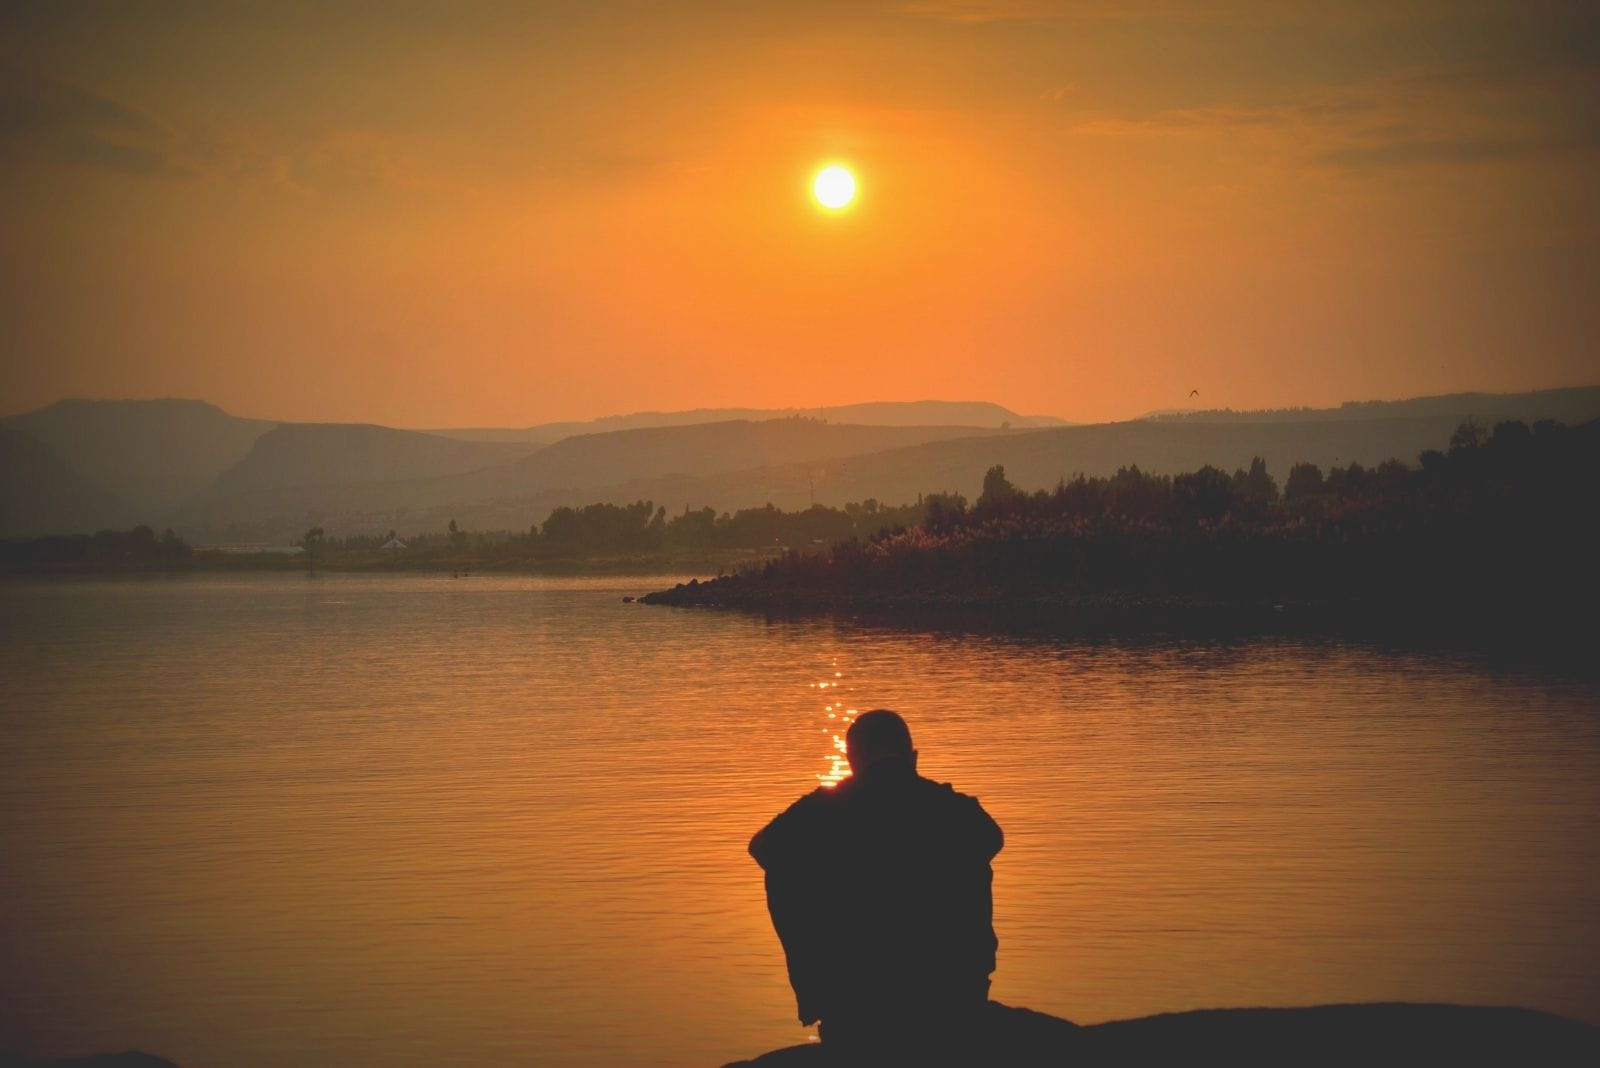 silhouette of a person sitting near the lake with the moon above